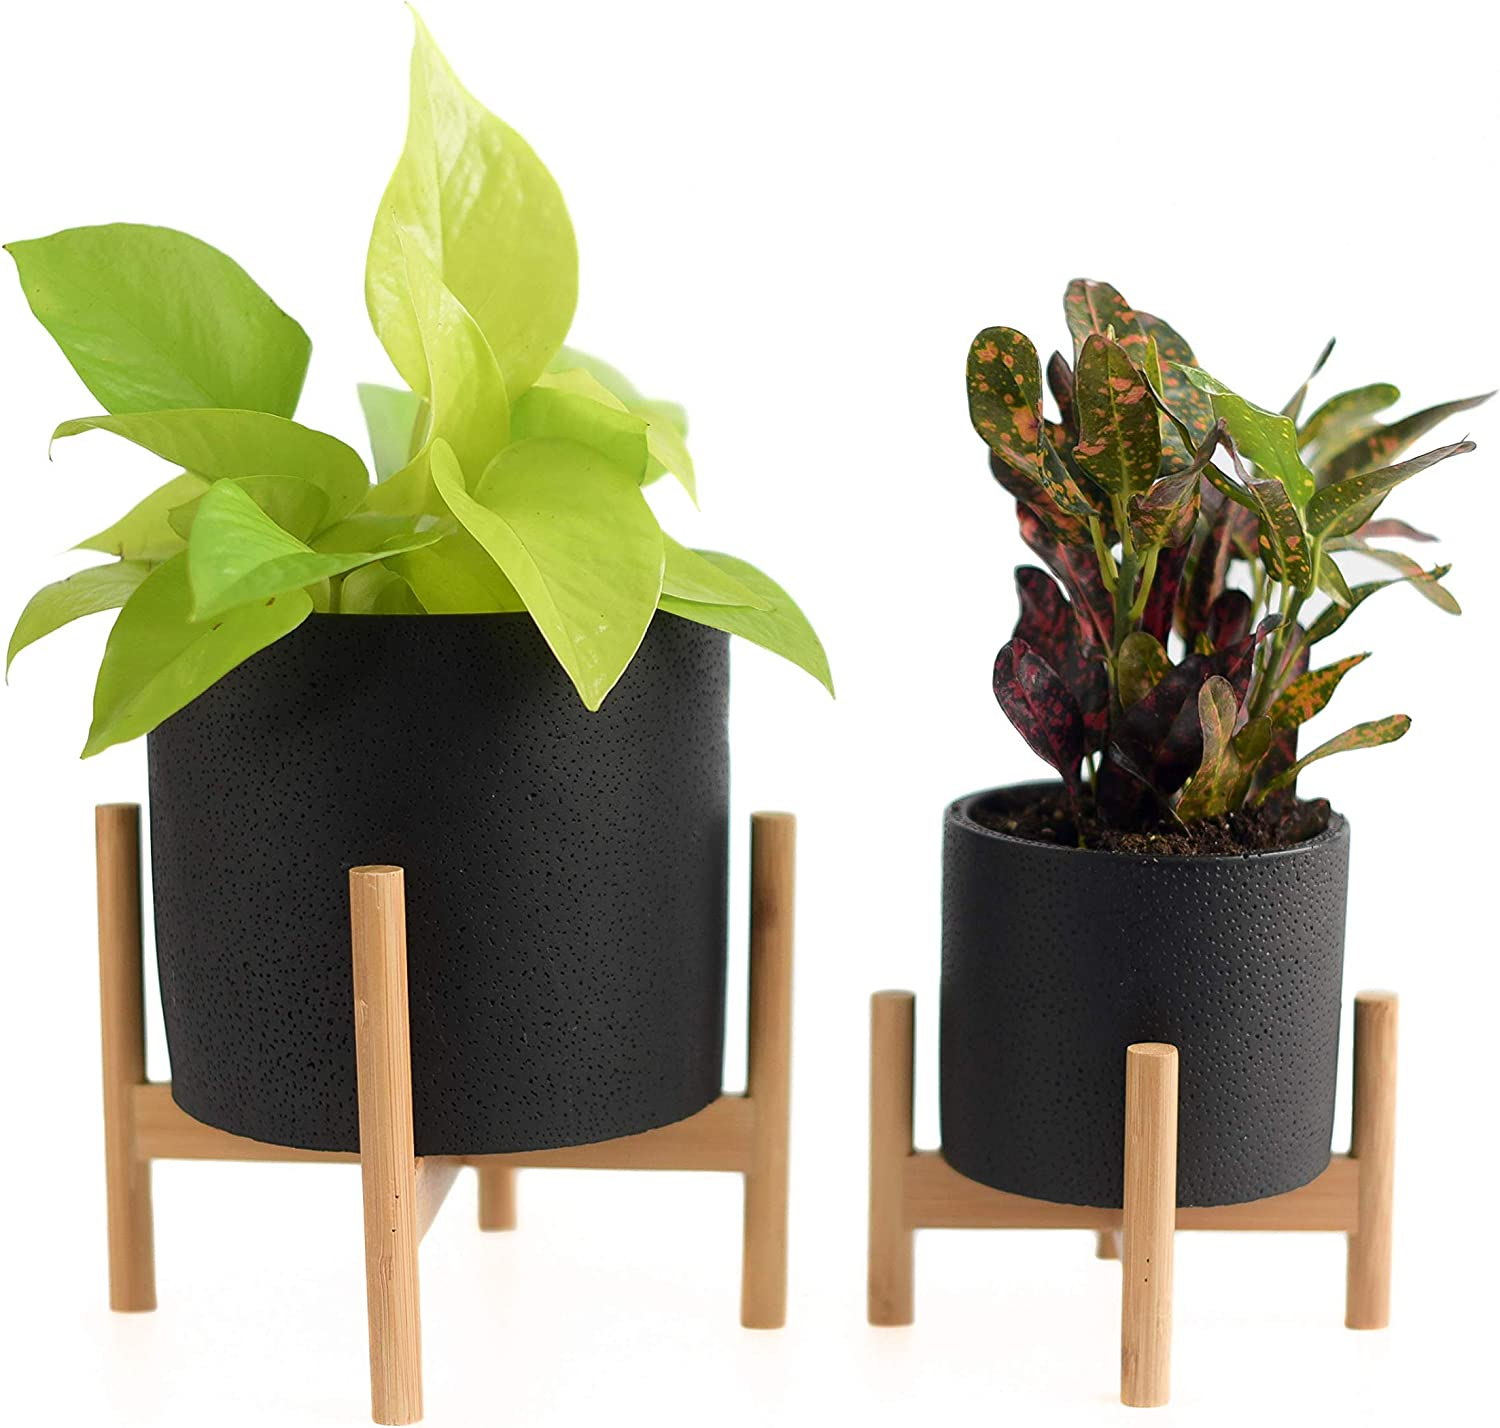 Mid-Century Modern Black Cement Planters with Bamboo Plant Stands (Set of Two Sizes) for Indoor Plants, Flower Pots with Drainage Hole